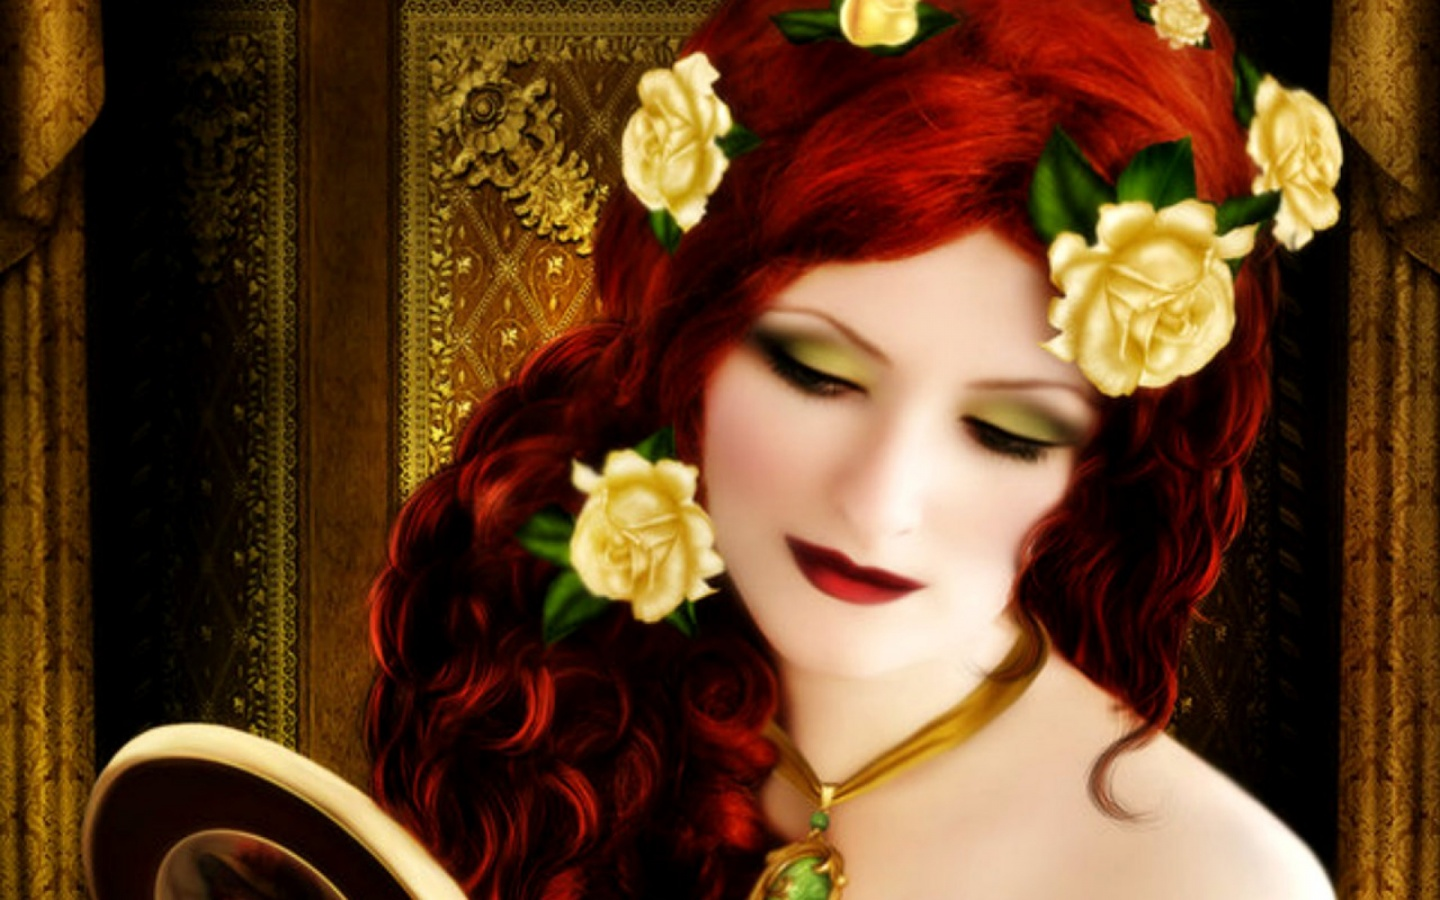 1440x900 Woman Red Hair With Roses